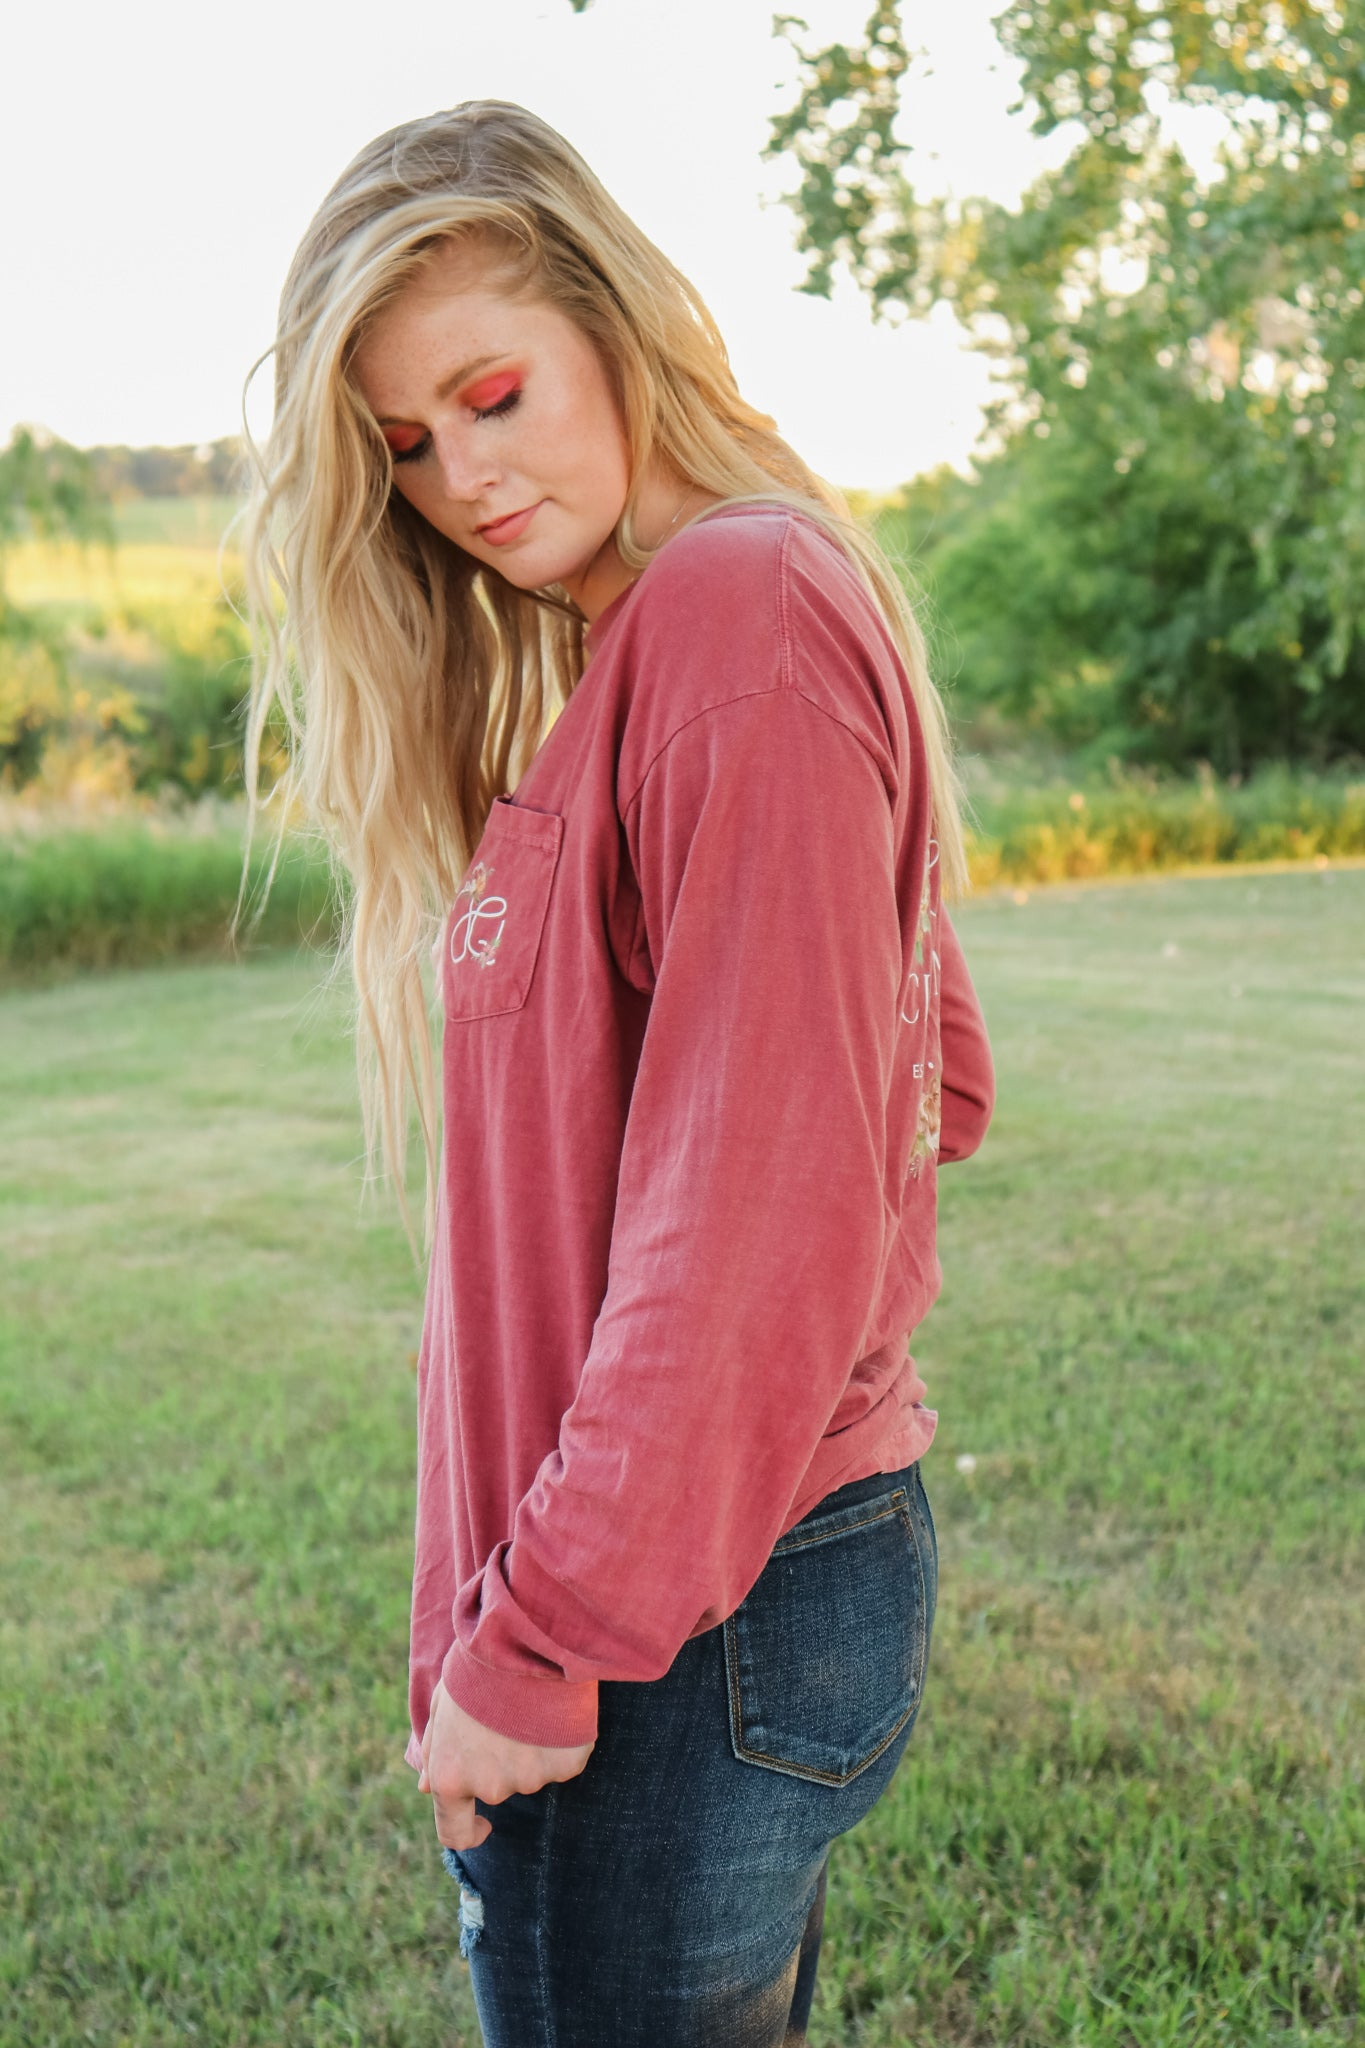 JQ Clothing Co. Long Sleeve Tee 3 - JQ Clothing Co. - Oakes, ND